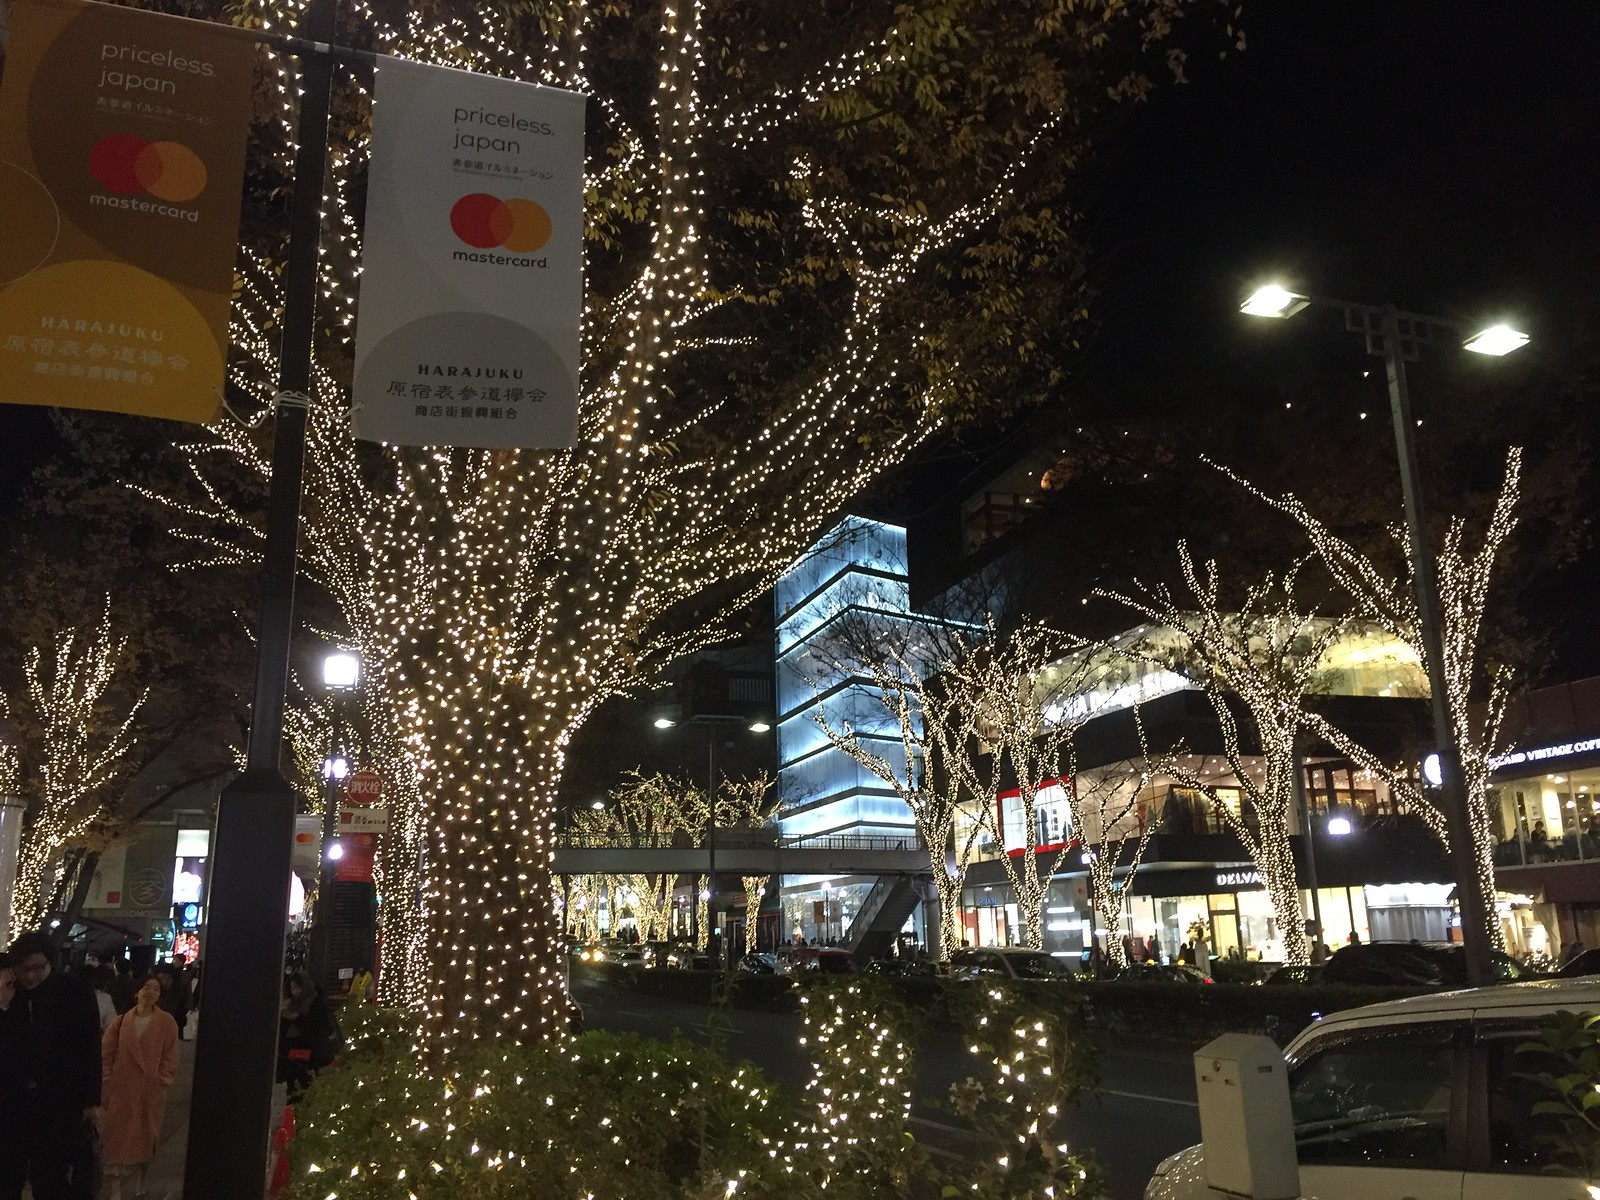 12. Omotesando at night